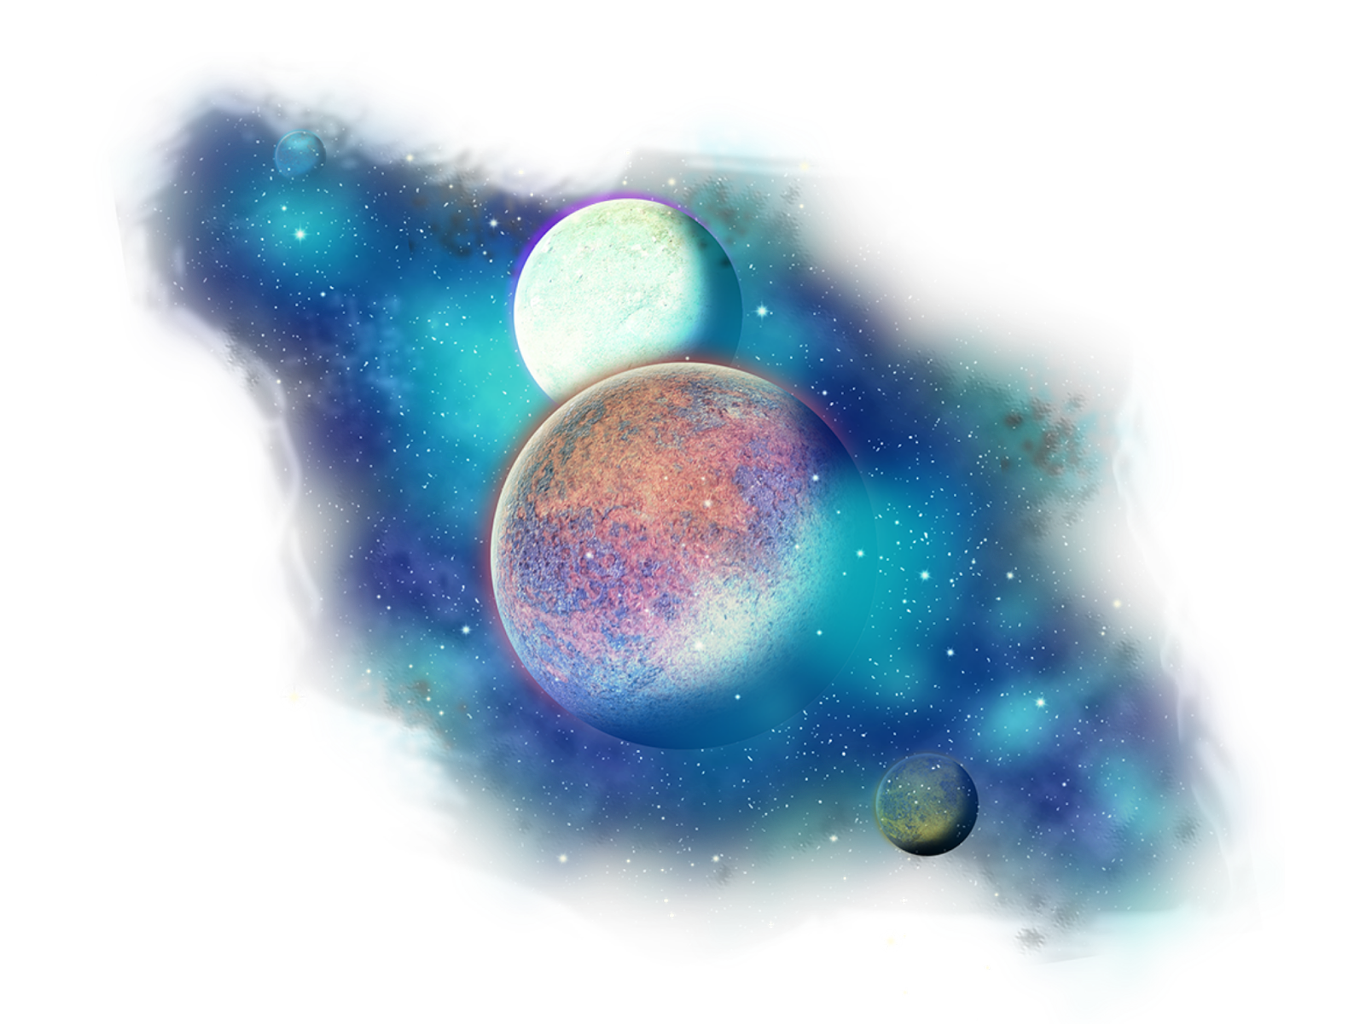 Freetoedit png stars galaxy. Planet clipart transparent background